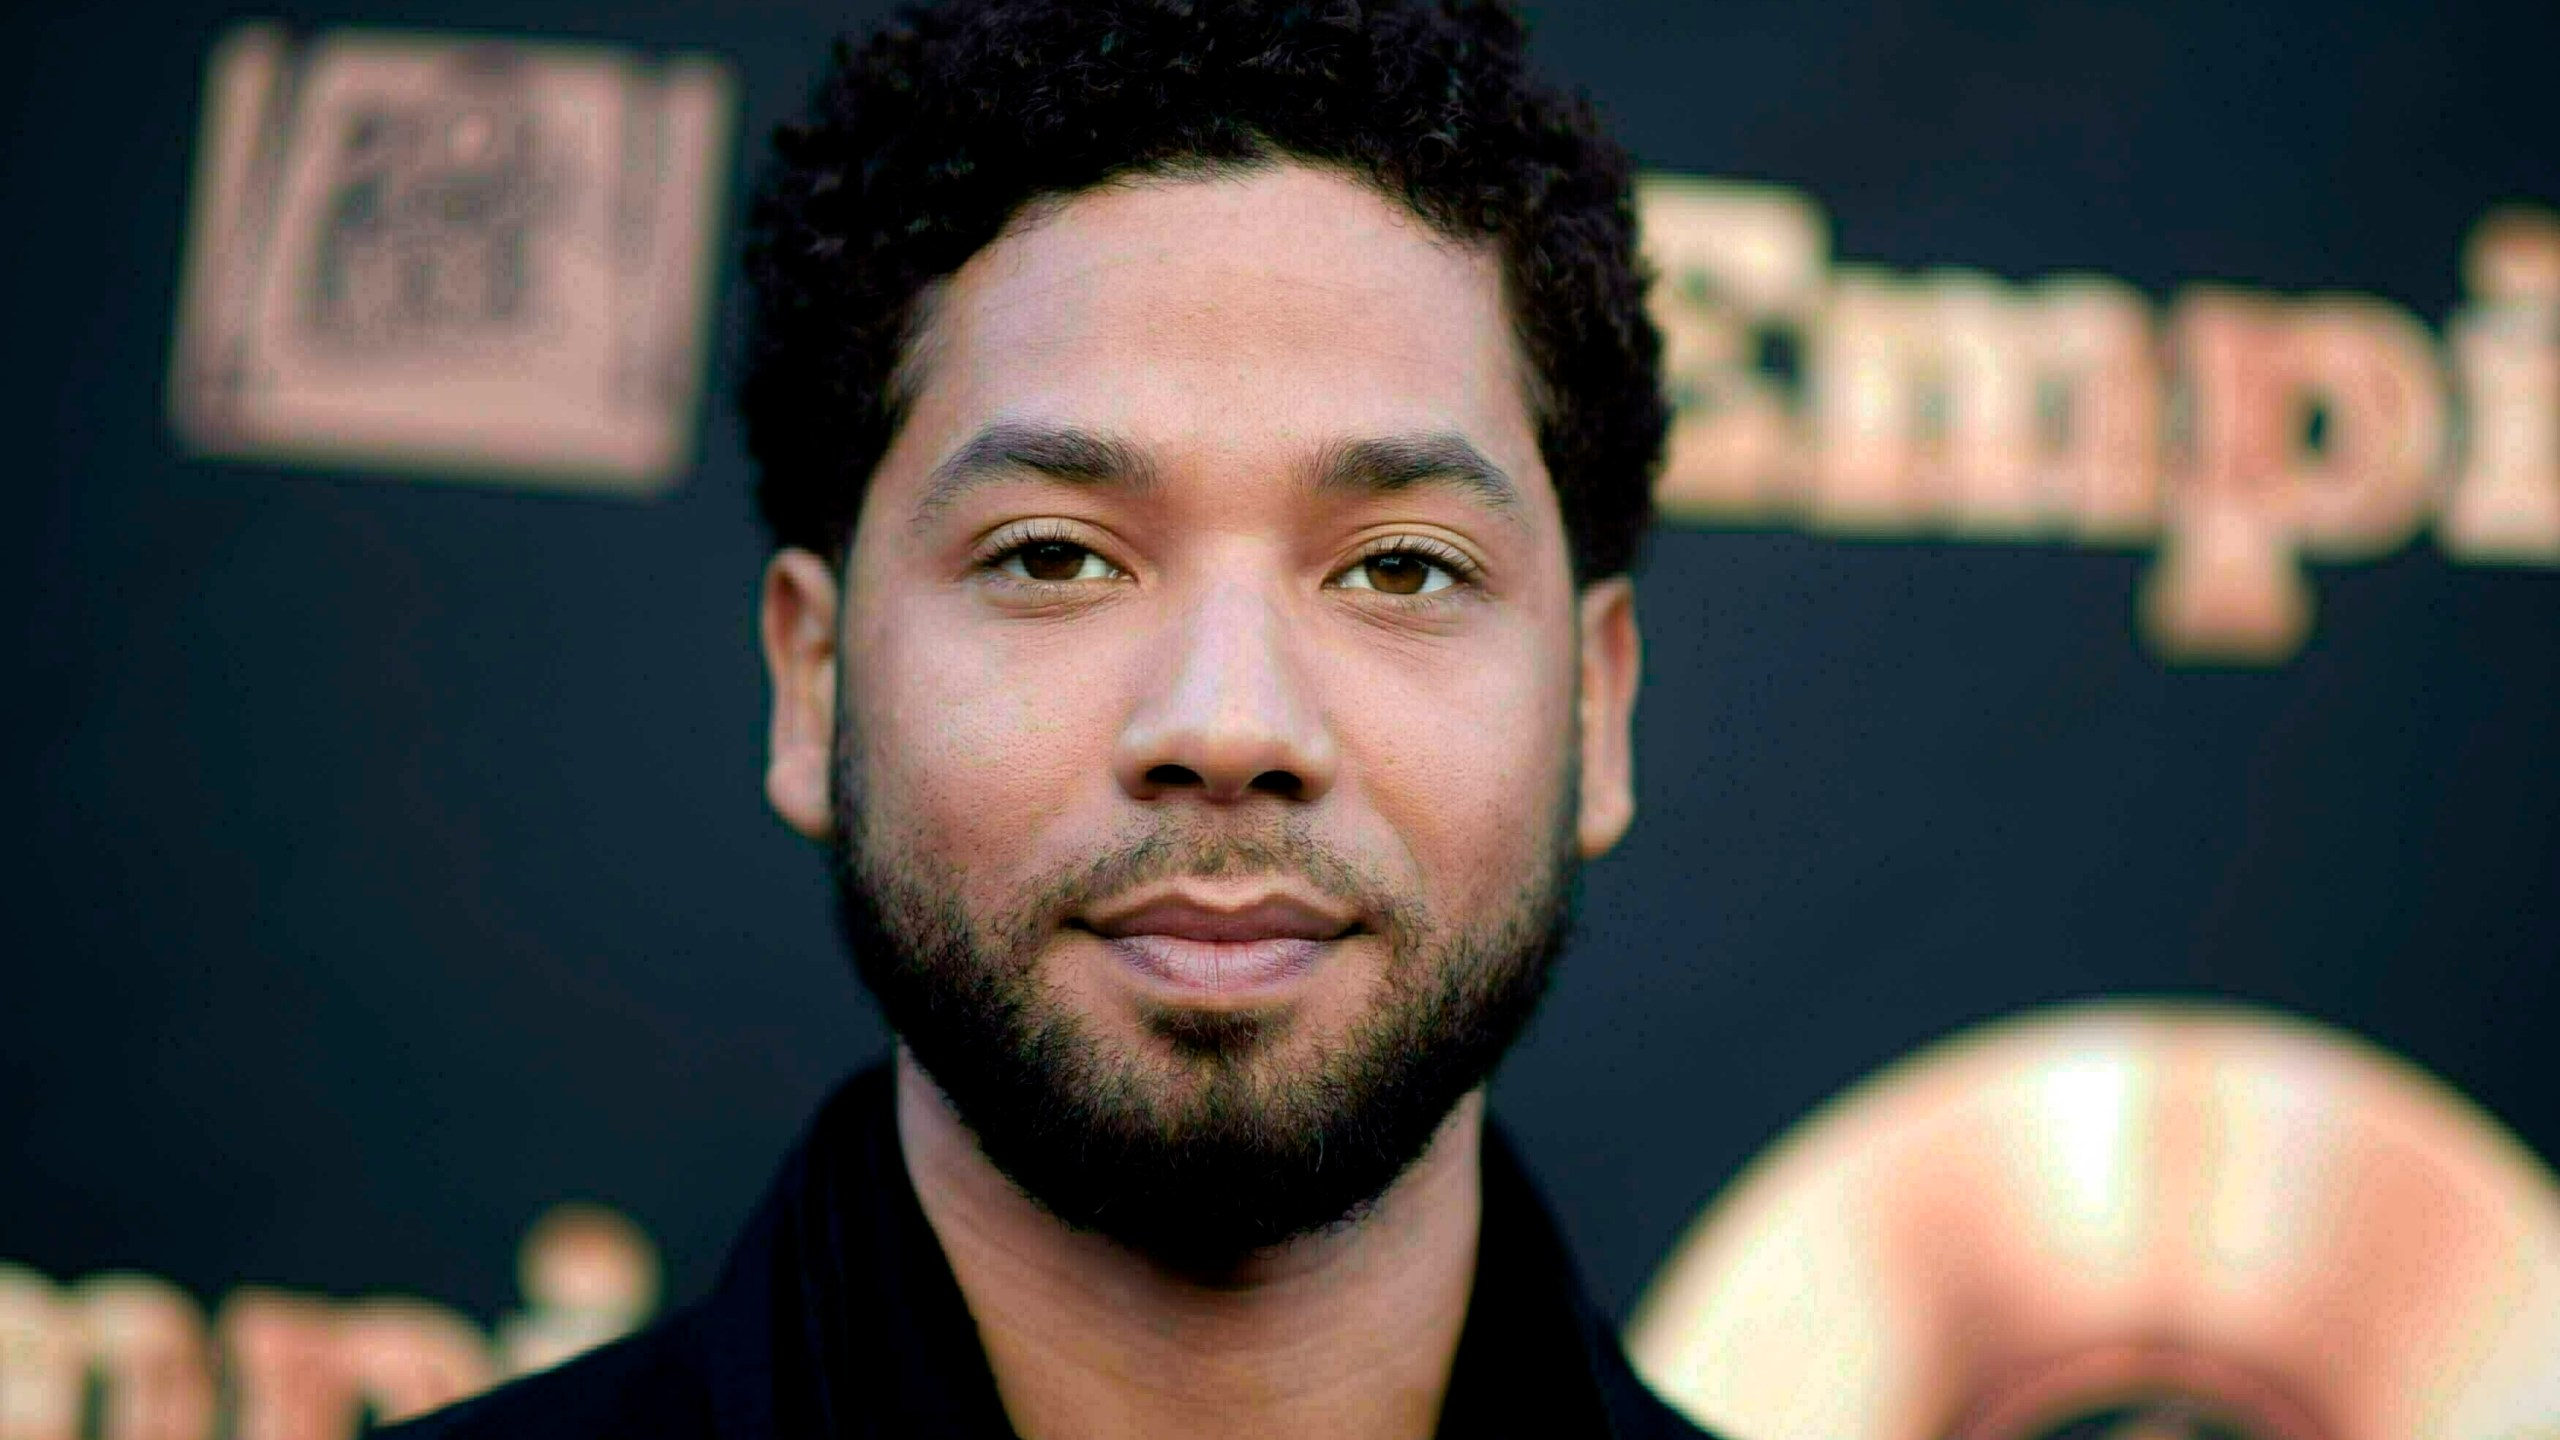 EMPIRE-ACTOR_ATACADO_46427-159532.jpg80309737